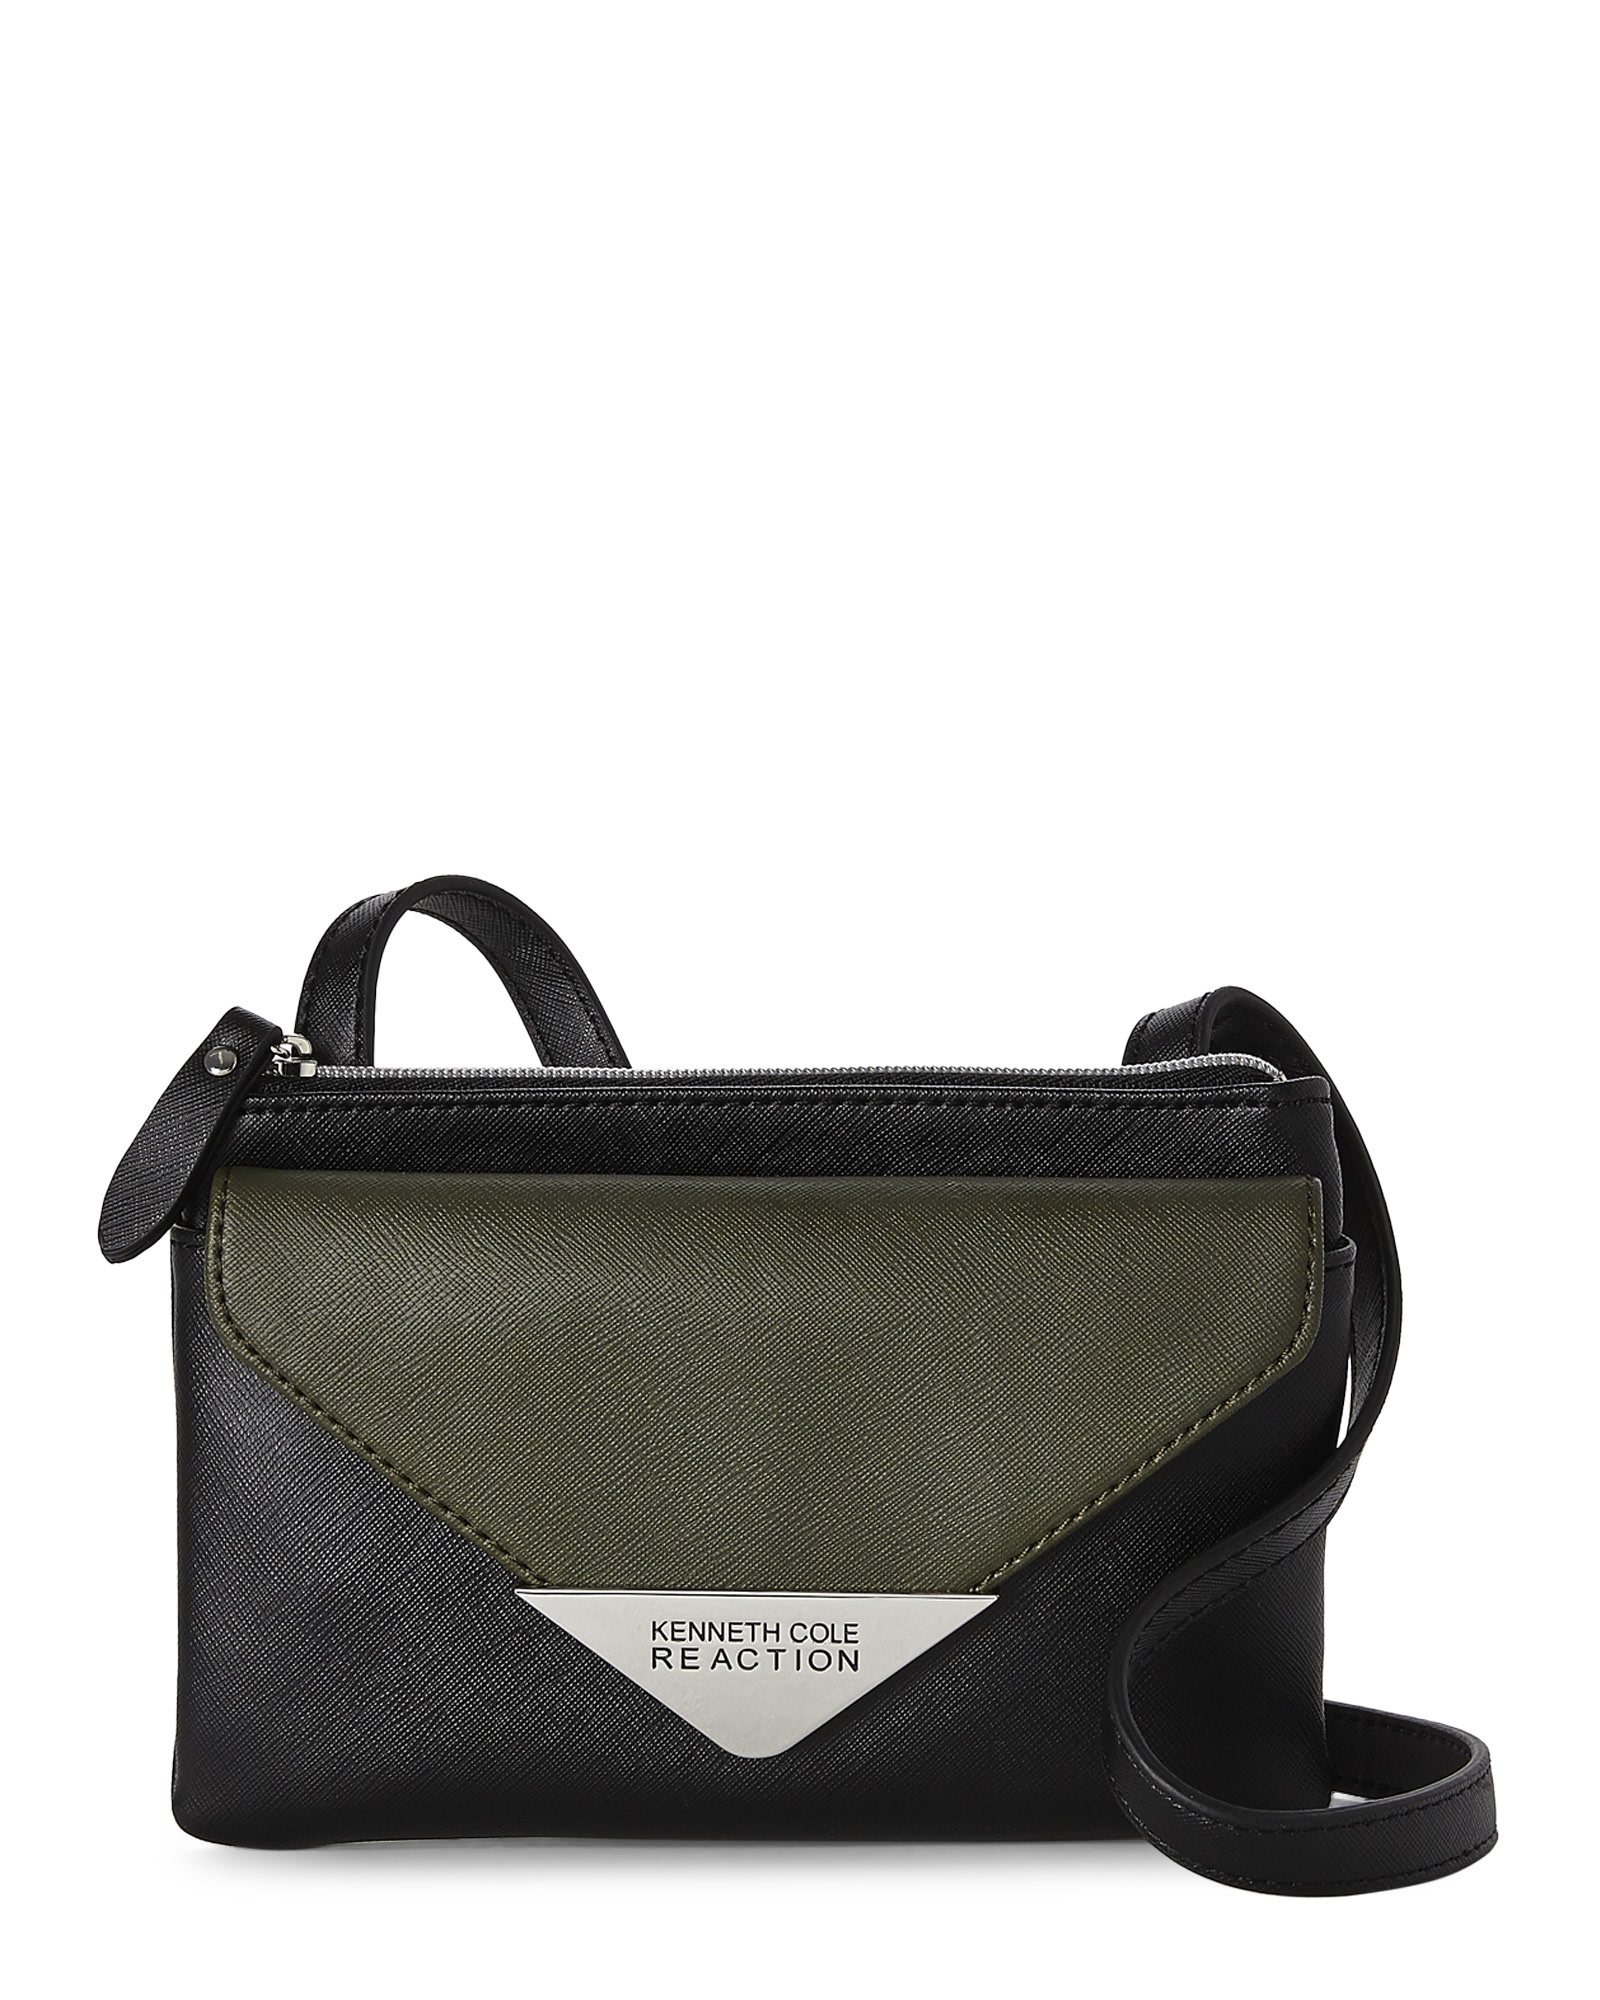 Lyst Kenneth Cole Reaction Black Amp Olivia Pyramid